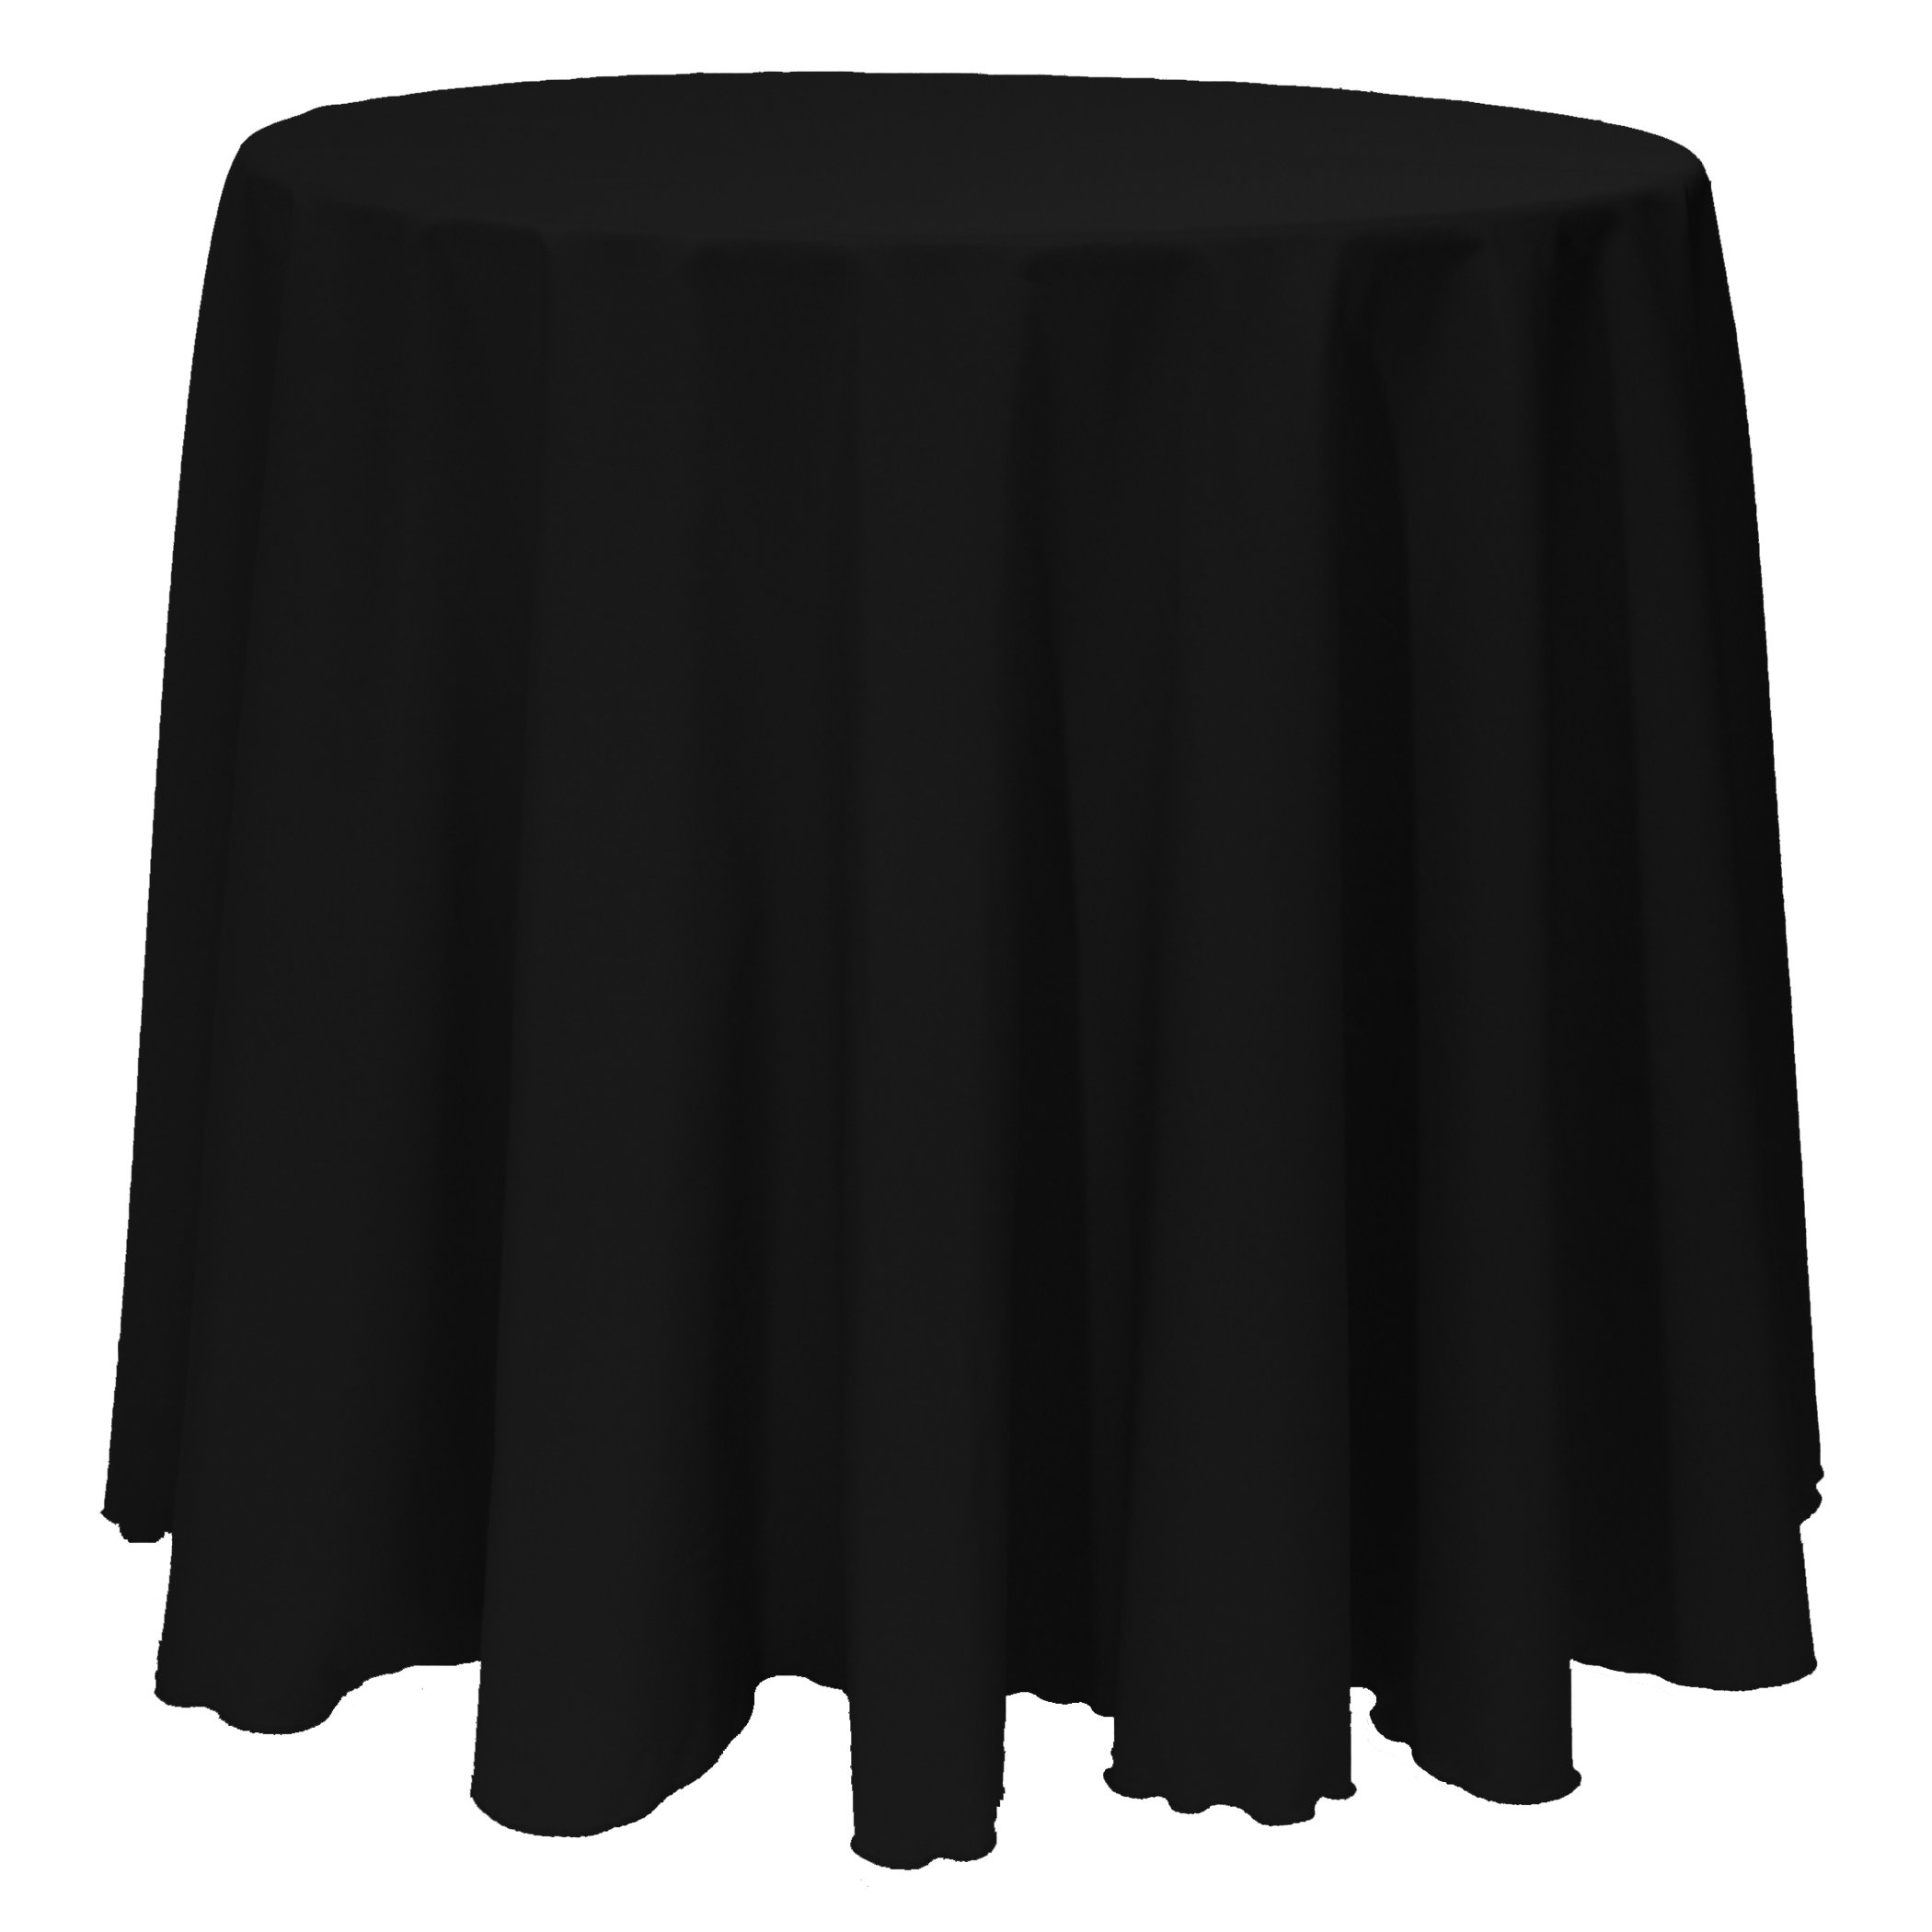 Ultimate Textile (10 Pack) 90-Inch Round Polyester Linen Tablecloth - for Wedding, Restaurant or Banquet use, Black by Ultimate Textile (Image #2)